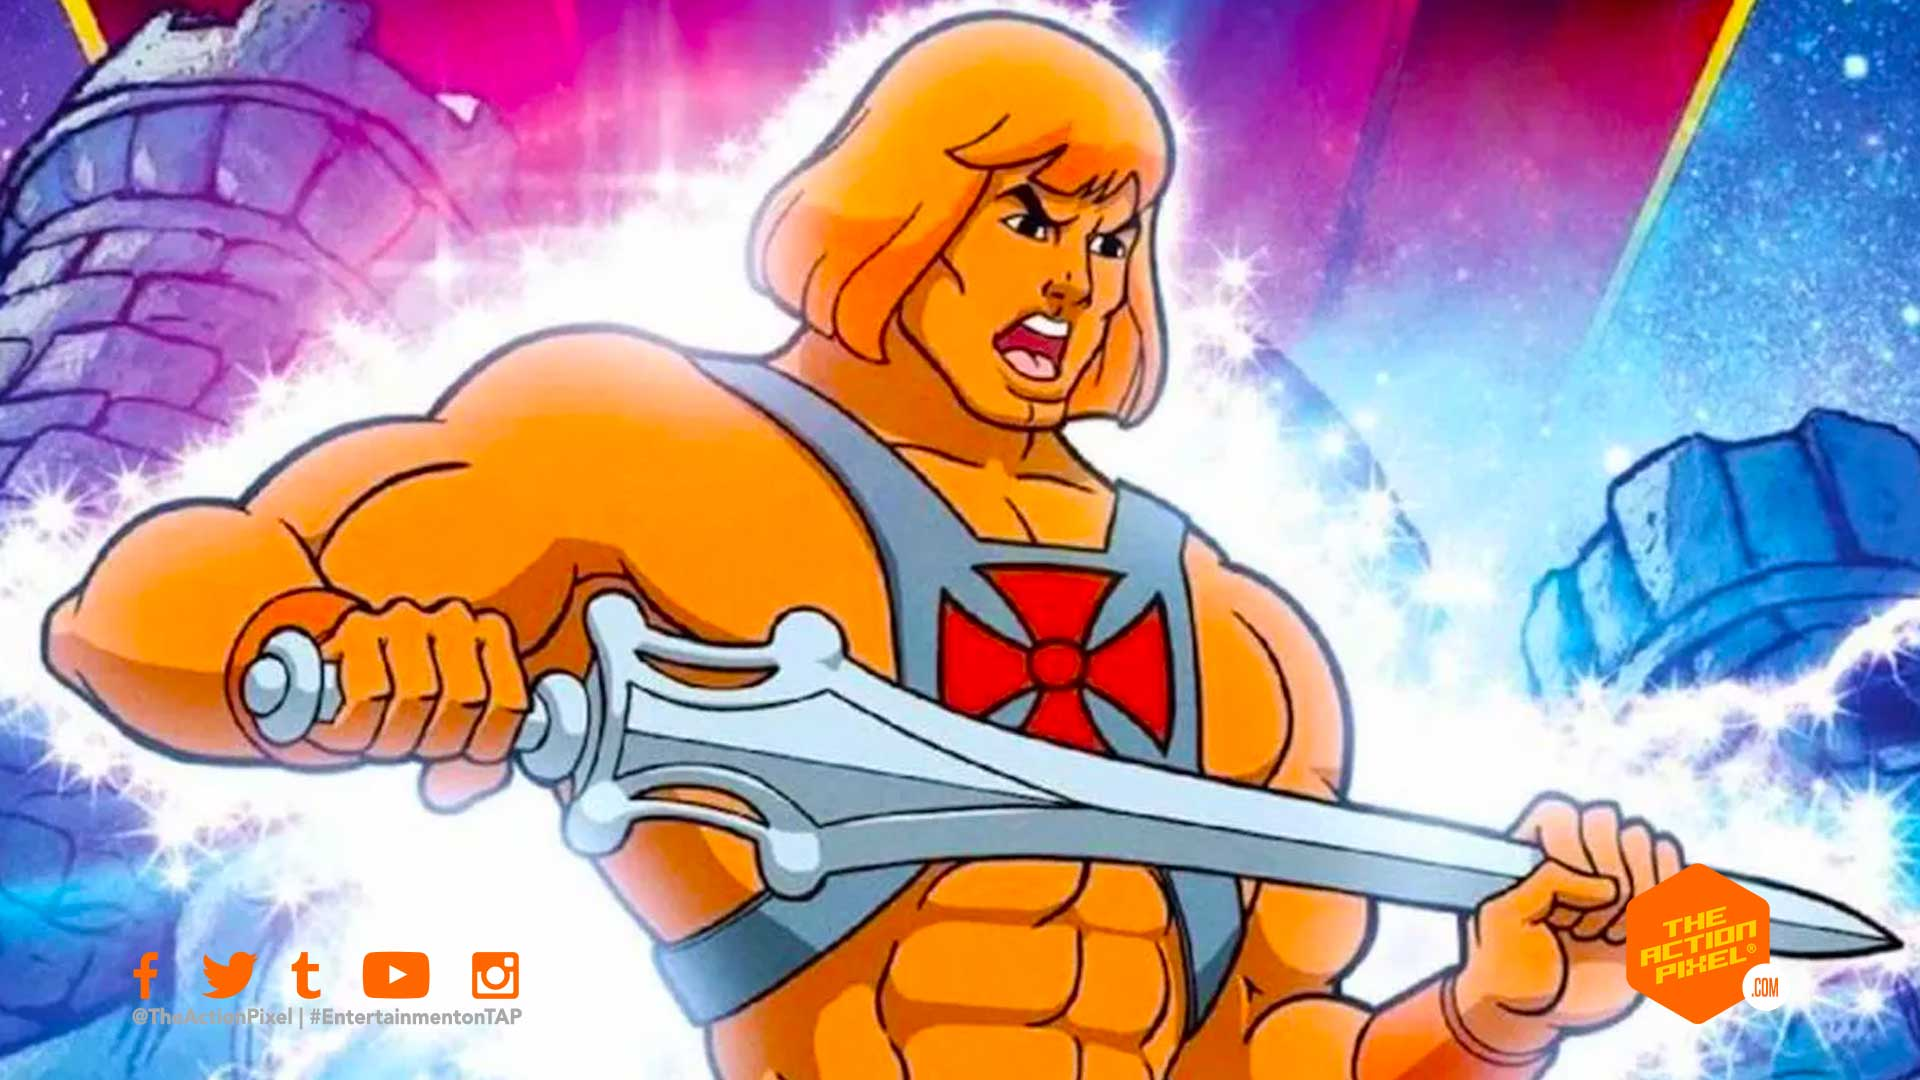 he-man, masters of the universe, netflix, entertainment on tap, netflix animated series, netflix animation, featured, entertainment on tap, the action pixel,